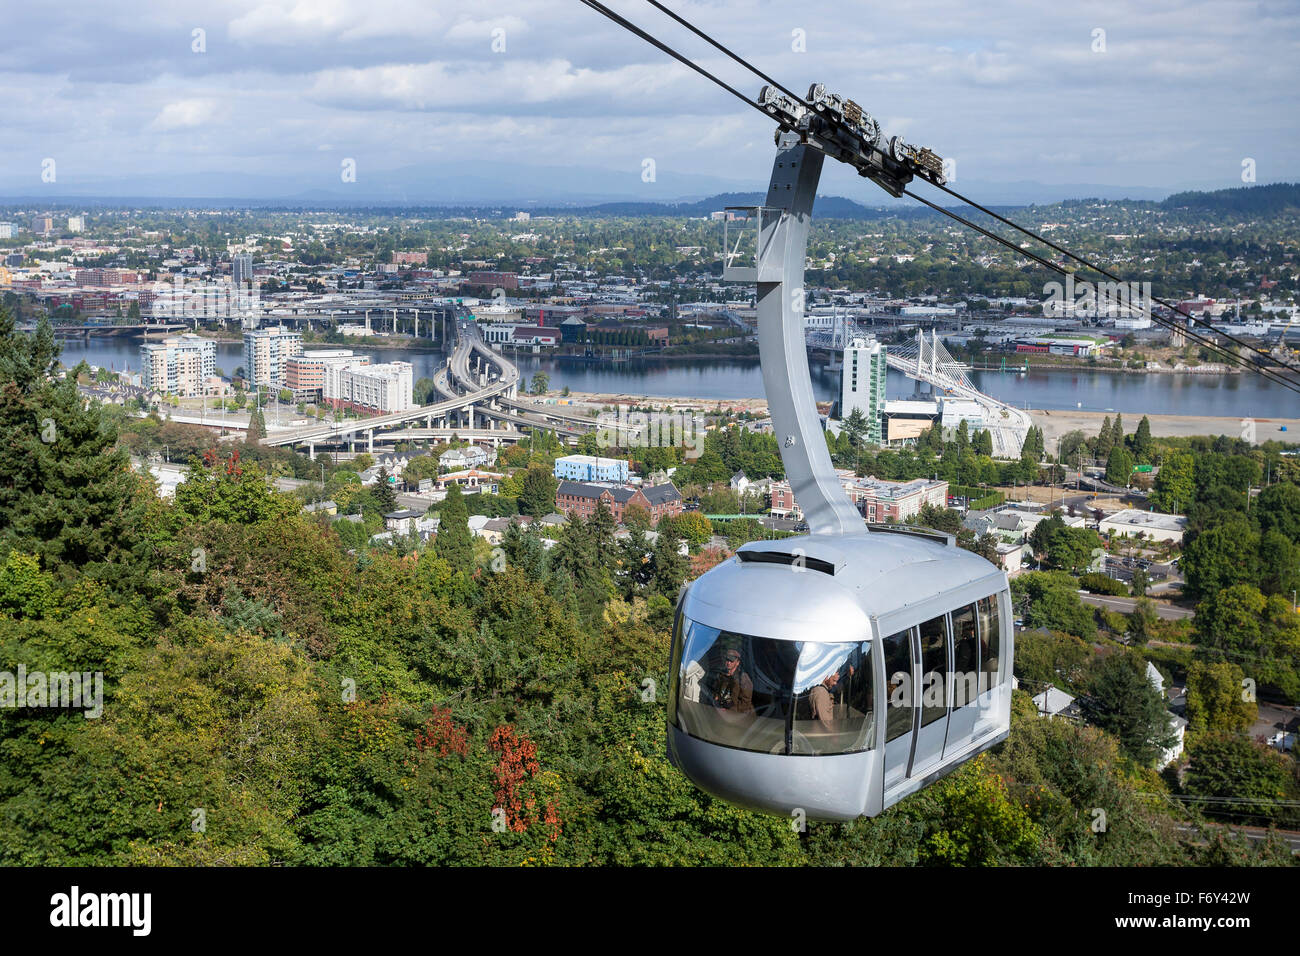 The Aerial Tram arrives overlooking  Portland, Oregon. - Stock Image